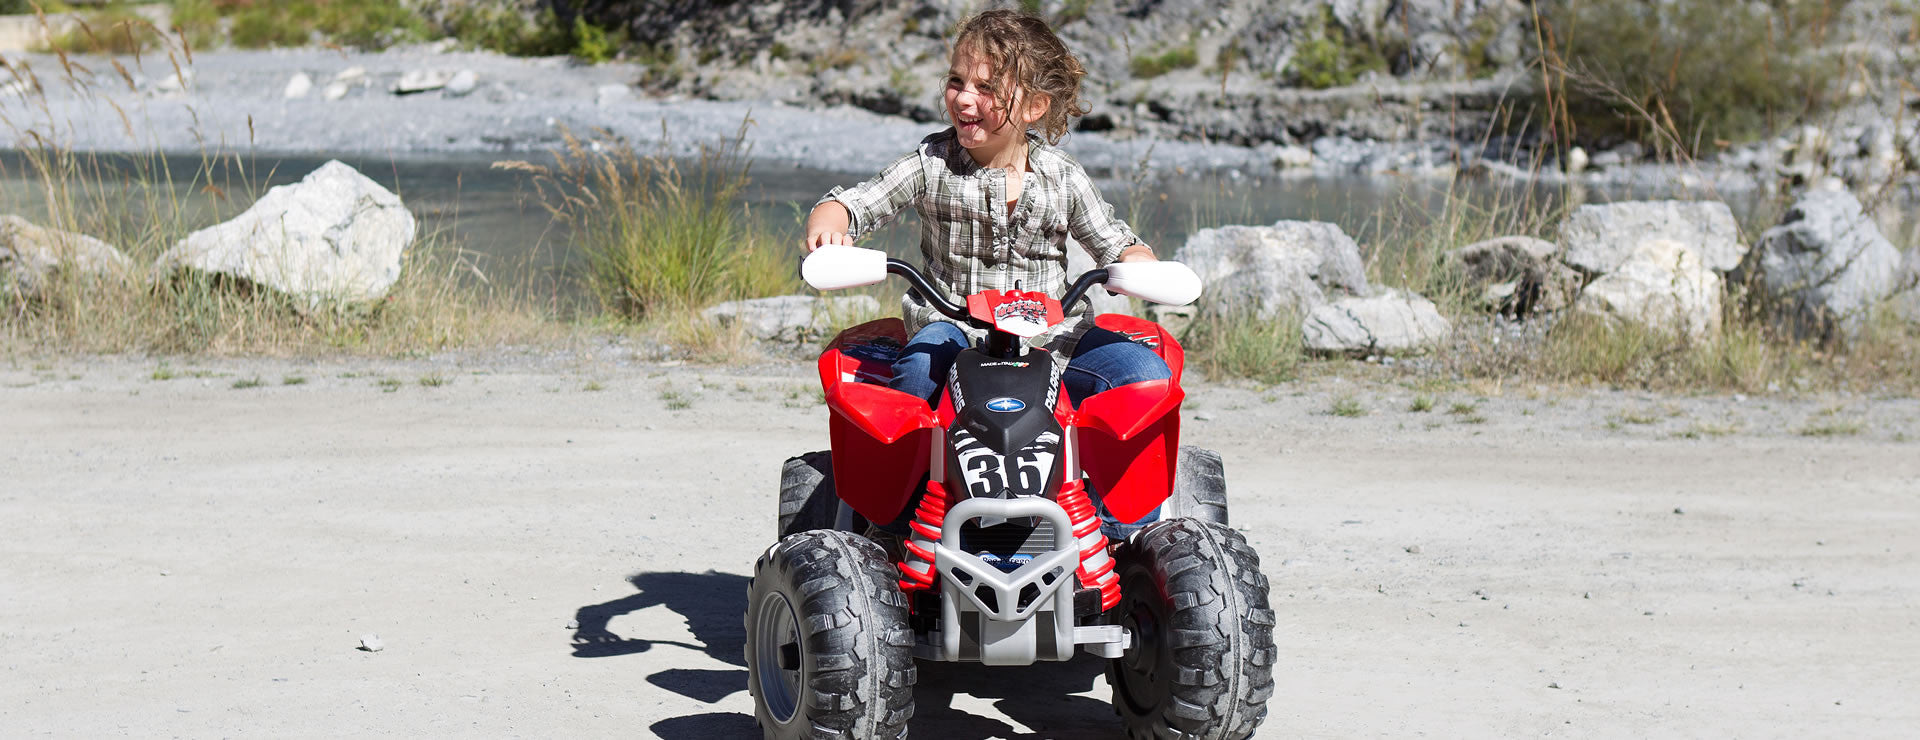 Peg Perego Polaris Outlaw 12v Kids Ride-On Quad Bike Red